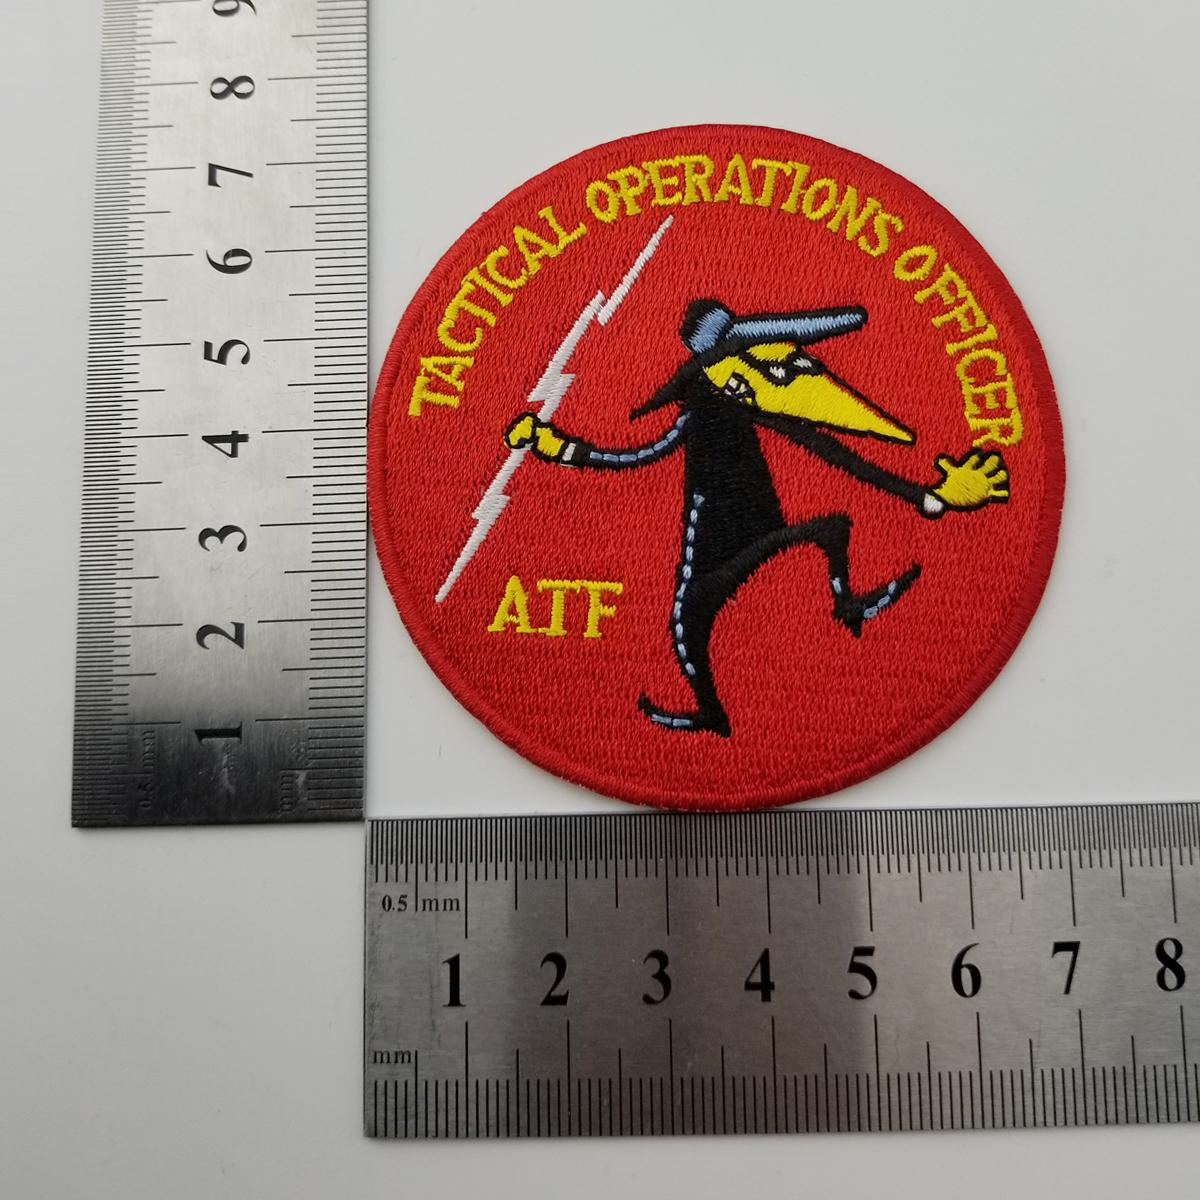 TACTICAL OPERATIONS OFFICER AFF Police Embroidery patch for Clothing Jeans Bag Decoration Iron on Patch